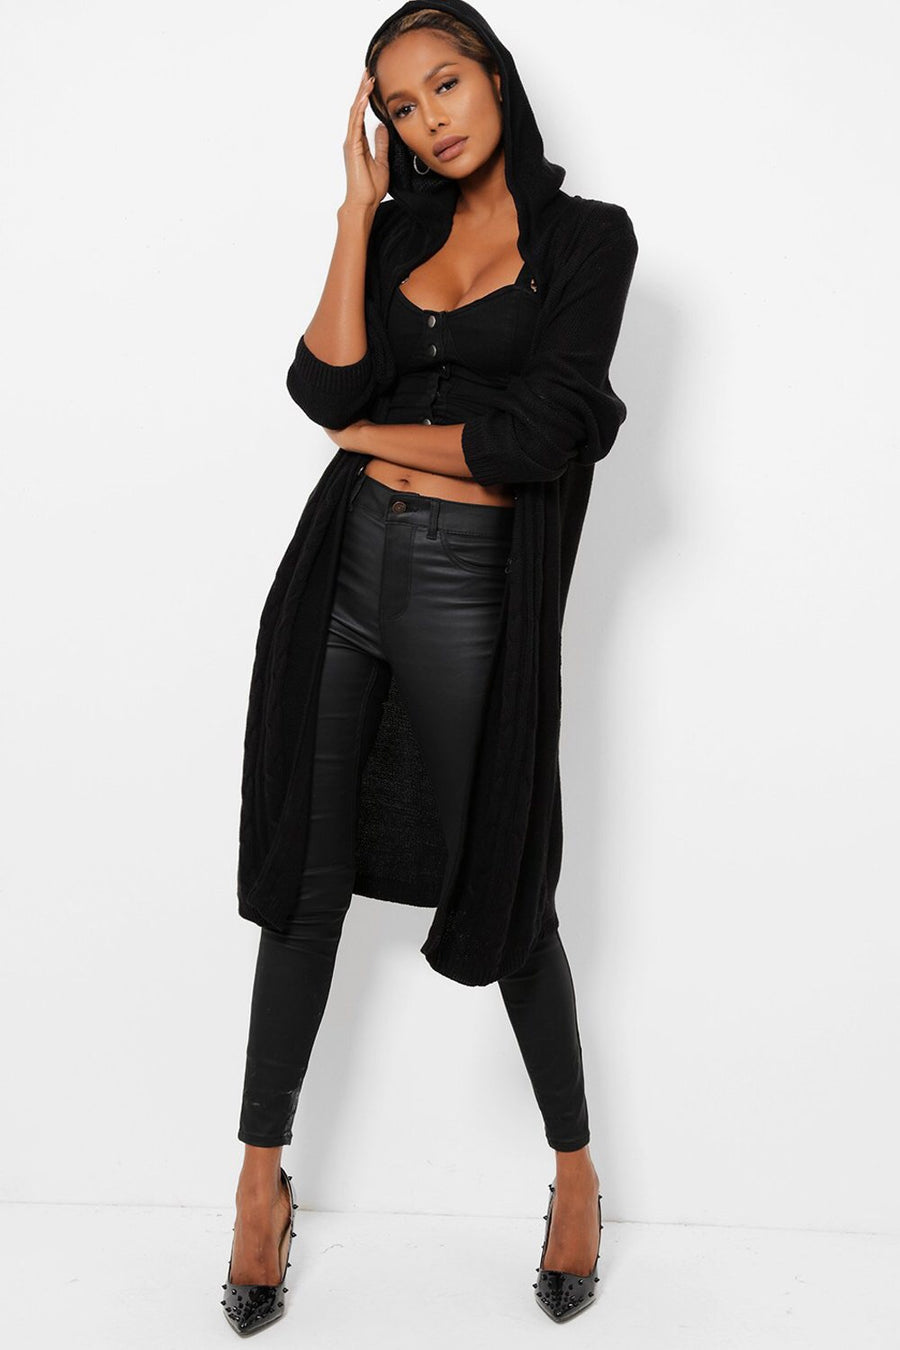 'Chloe' black long cable knit hooded cardigan